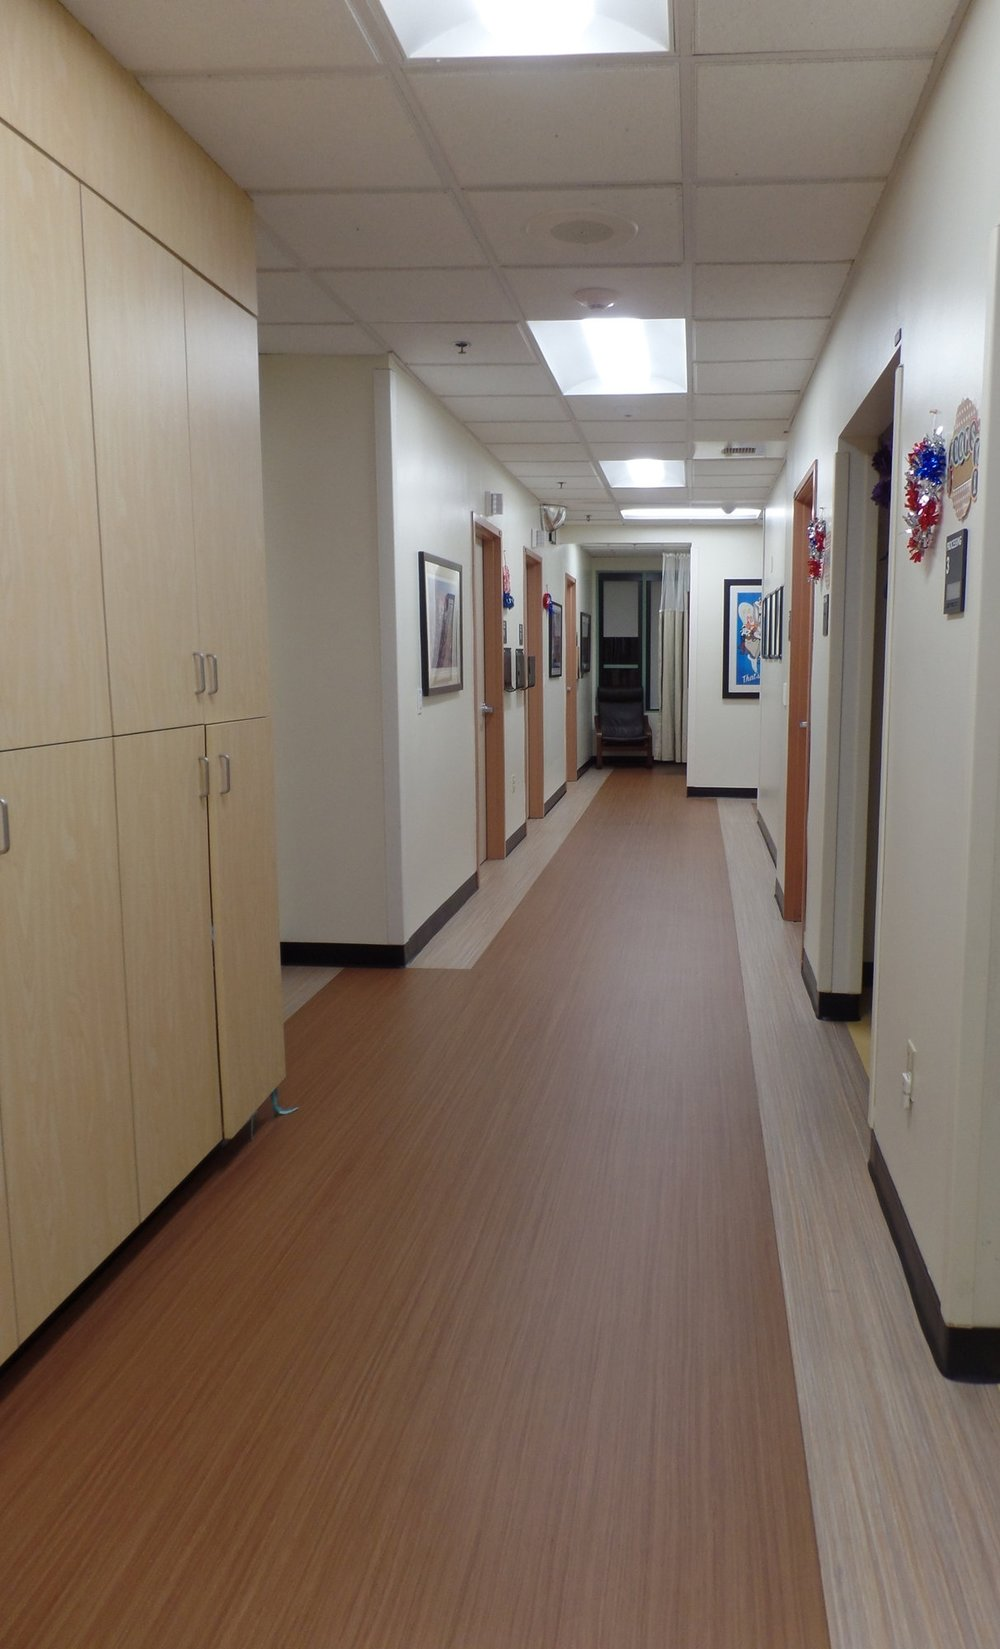 Kaiser Permanente San Dimas Medical Offices - Pediatric Corridor Upgrade